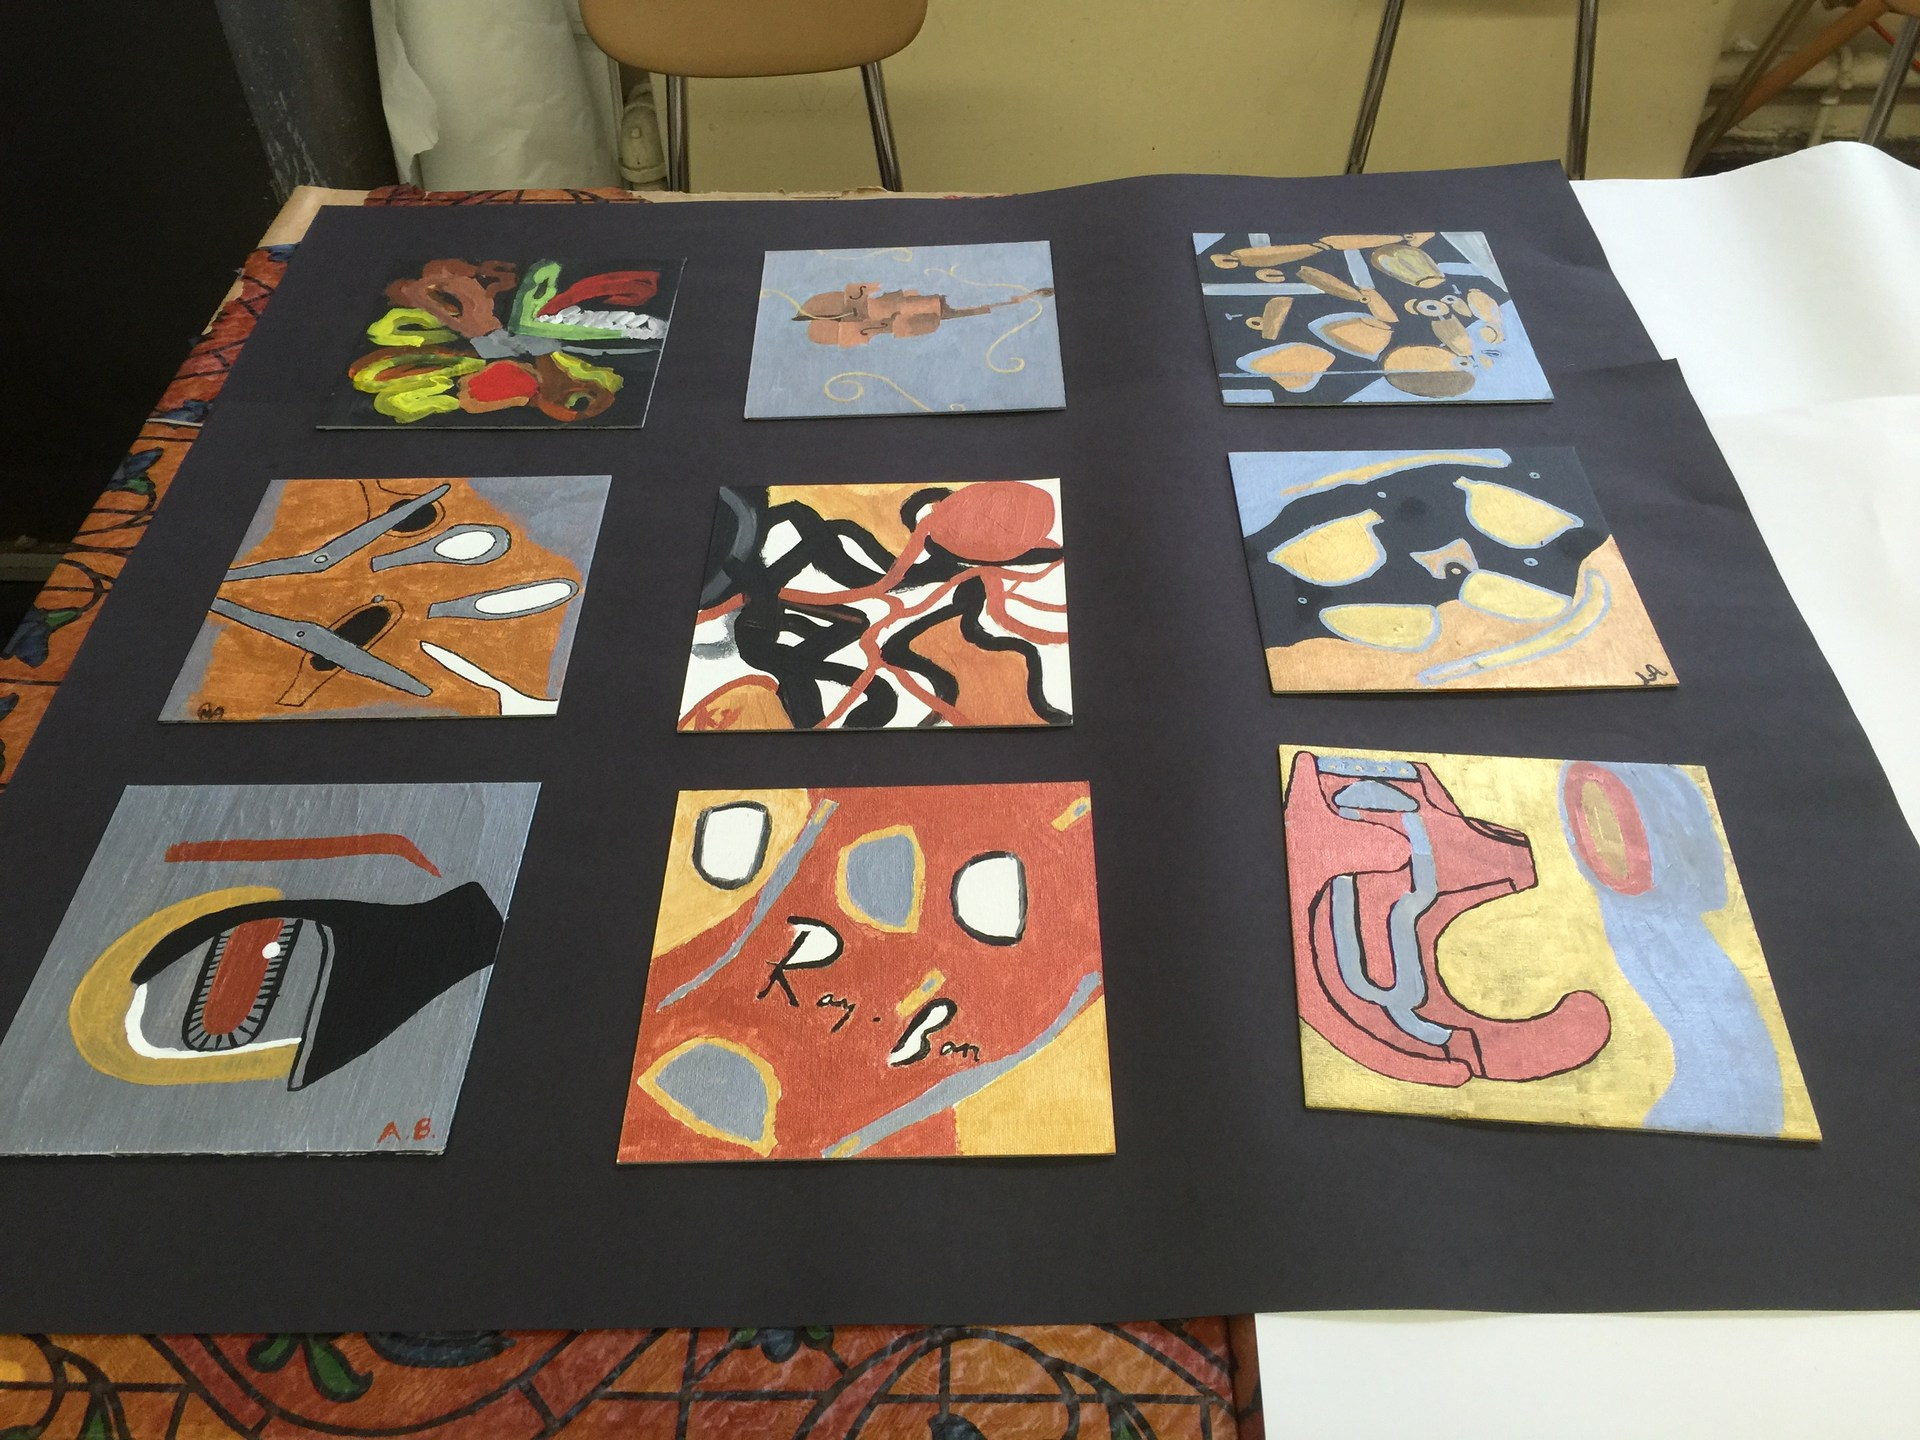 Group abstract painting deconstructing objects.